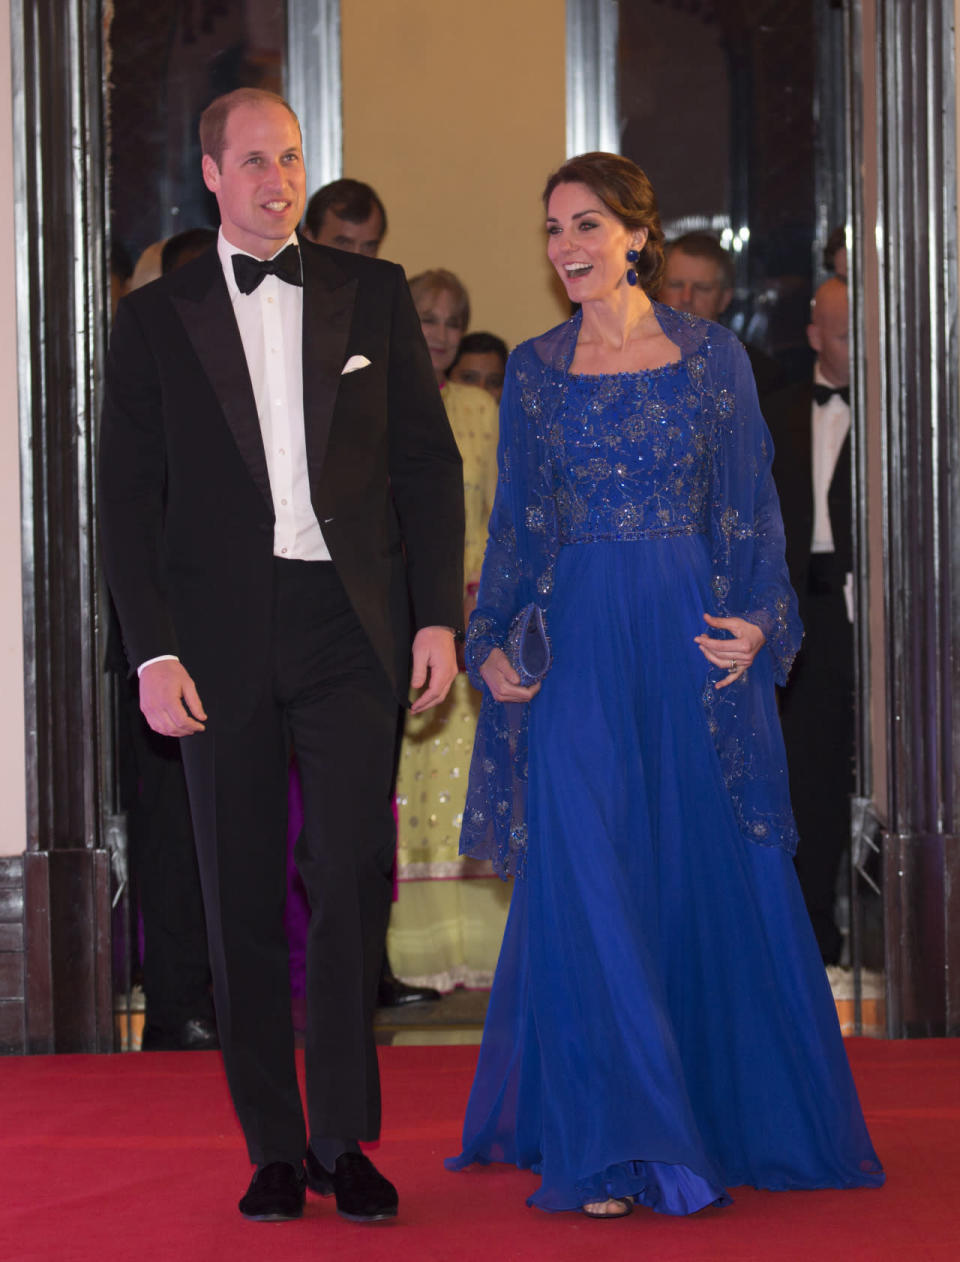 <p>Kate's gorgeous royal blue gown for the Bollywood Charity Gala was designed by her go-to party brand, Jenny Packham. The fabric was hand-beaded in India and was paired with a matching embellished cape and bag. </p><p><i>[Photo: PA]</i></p>